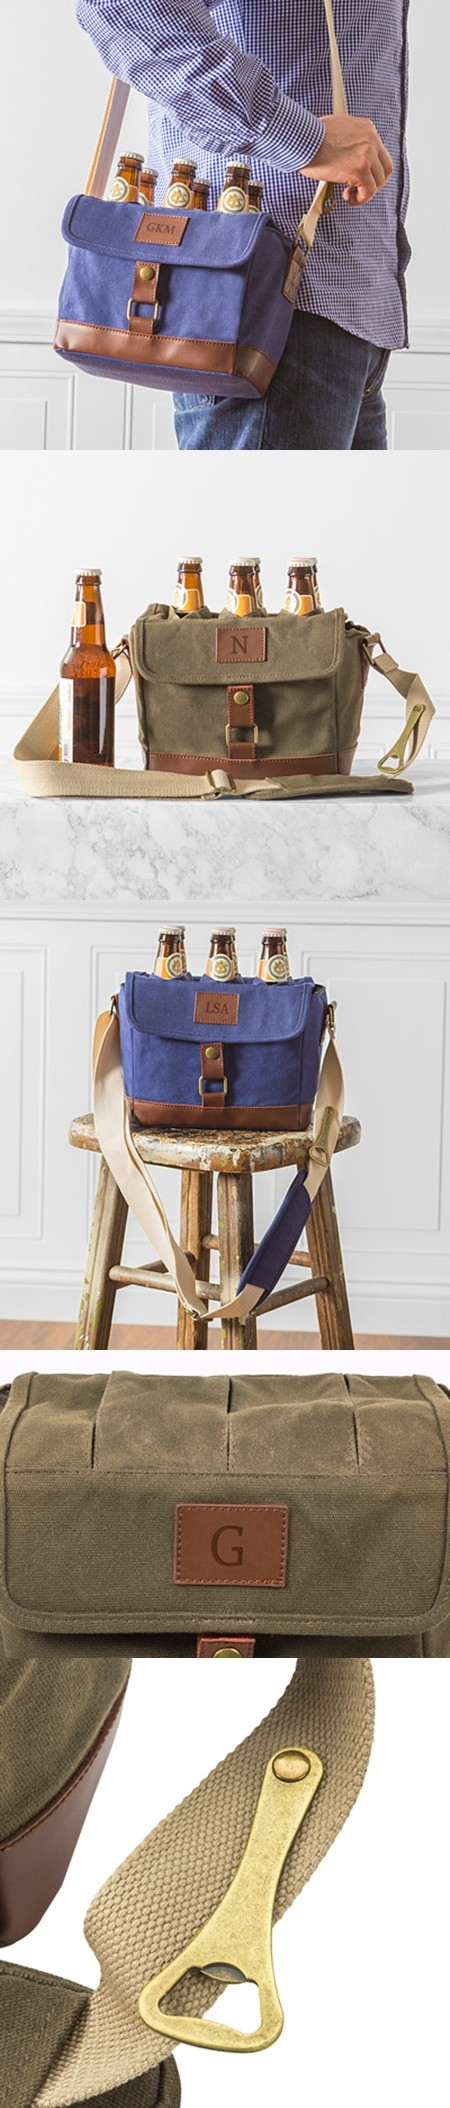 Personalized Insulated Waxed Canvas 6-Pack Bottle Carrier (2 Colors)